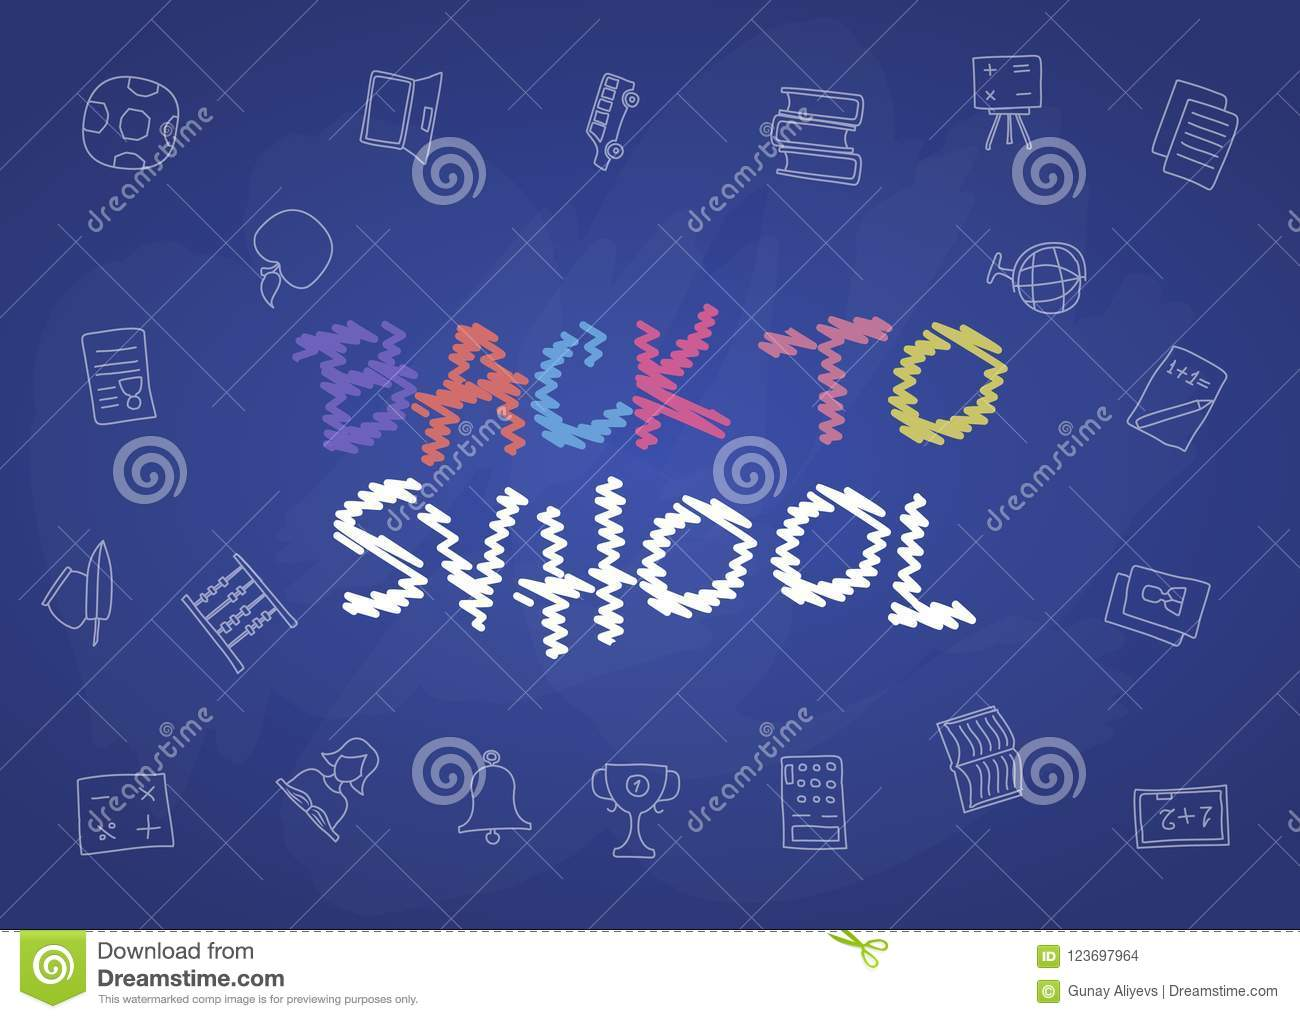 Welcome Back To School Poster With Doodles, Good For Textile